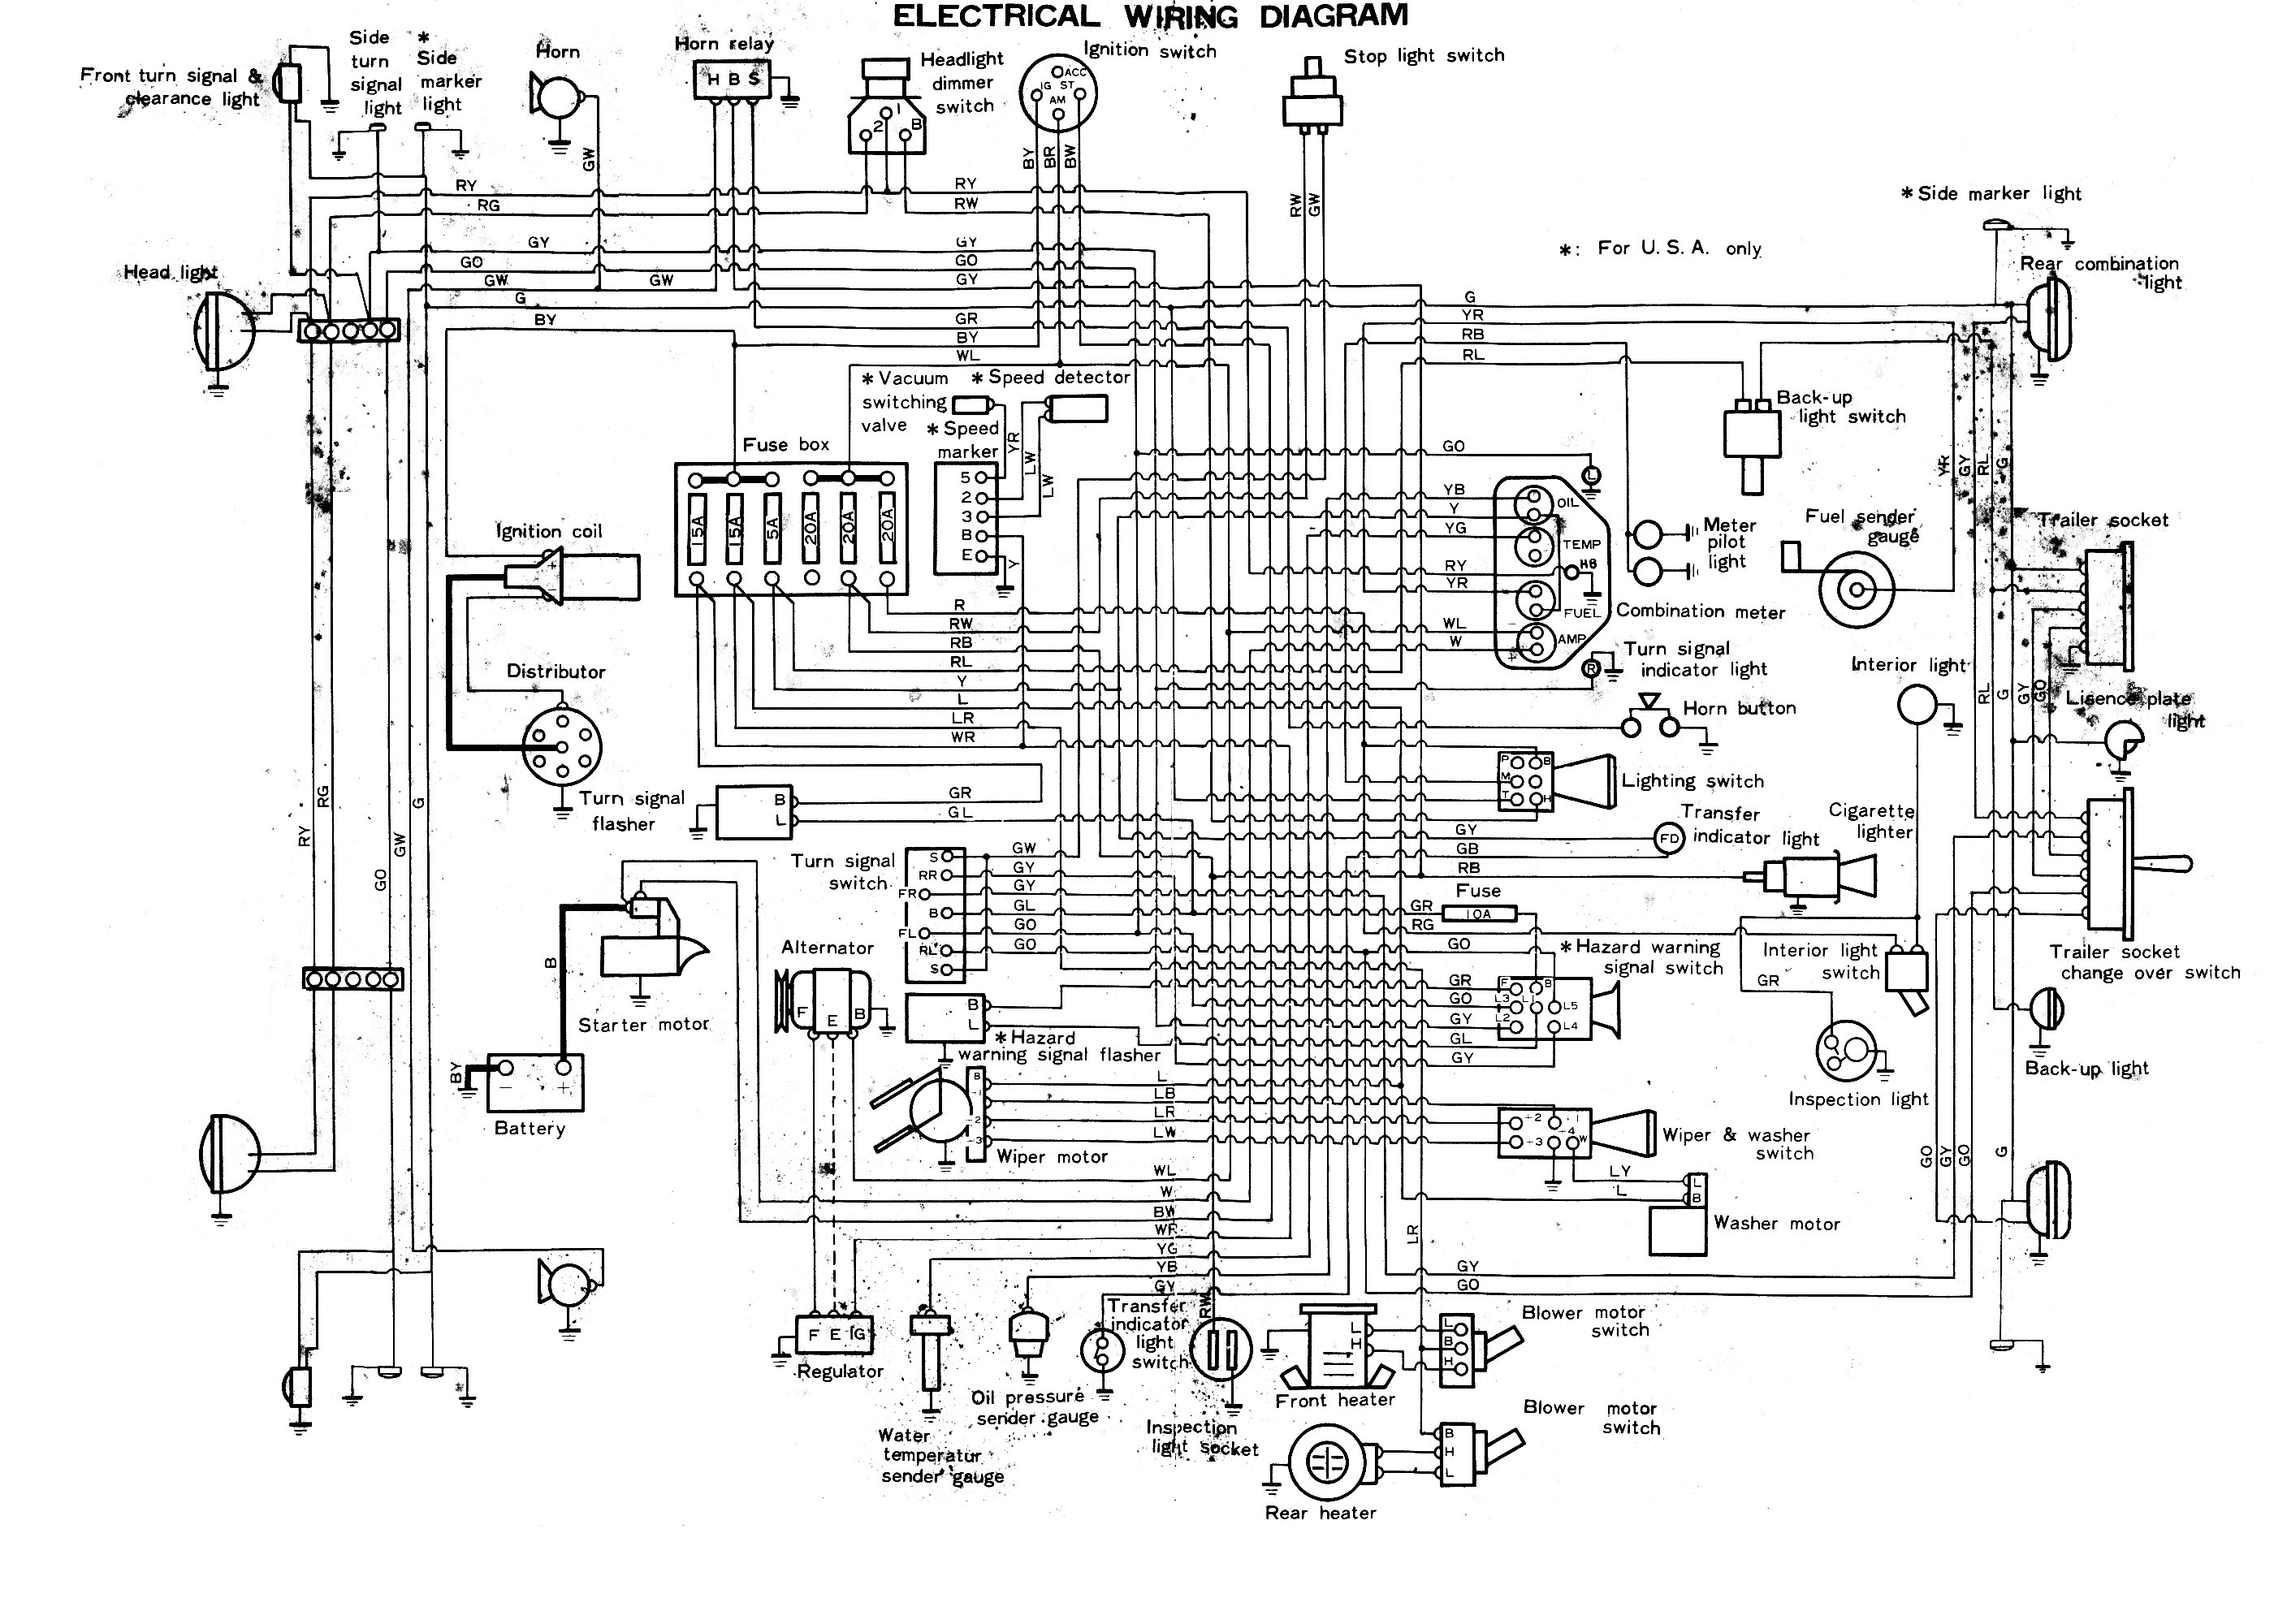 2005 toyota corolla wiring diagram pdf inspirational outstanding toyota prius wiring diagram crest simple wiring of 2005 toyota corolla wiring diagram pdf 2001 pt cruiser electrical wiring diagram great design of wiring